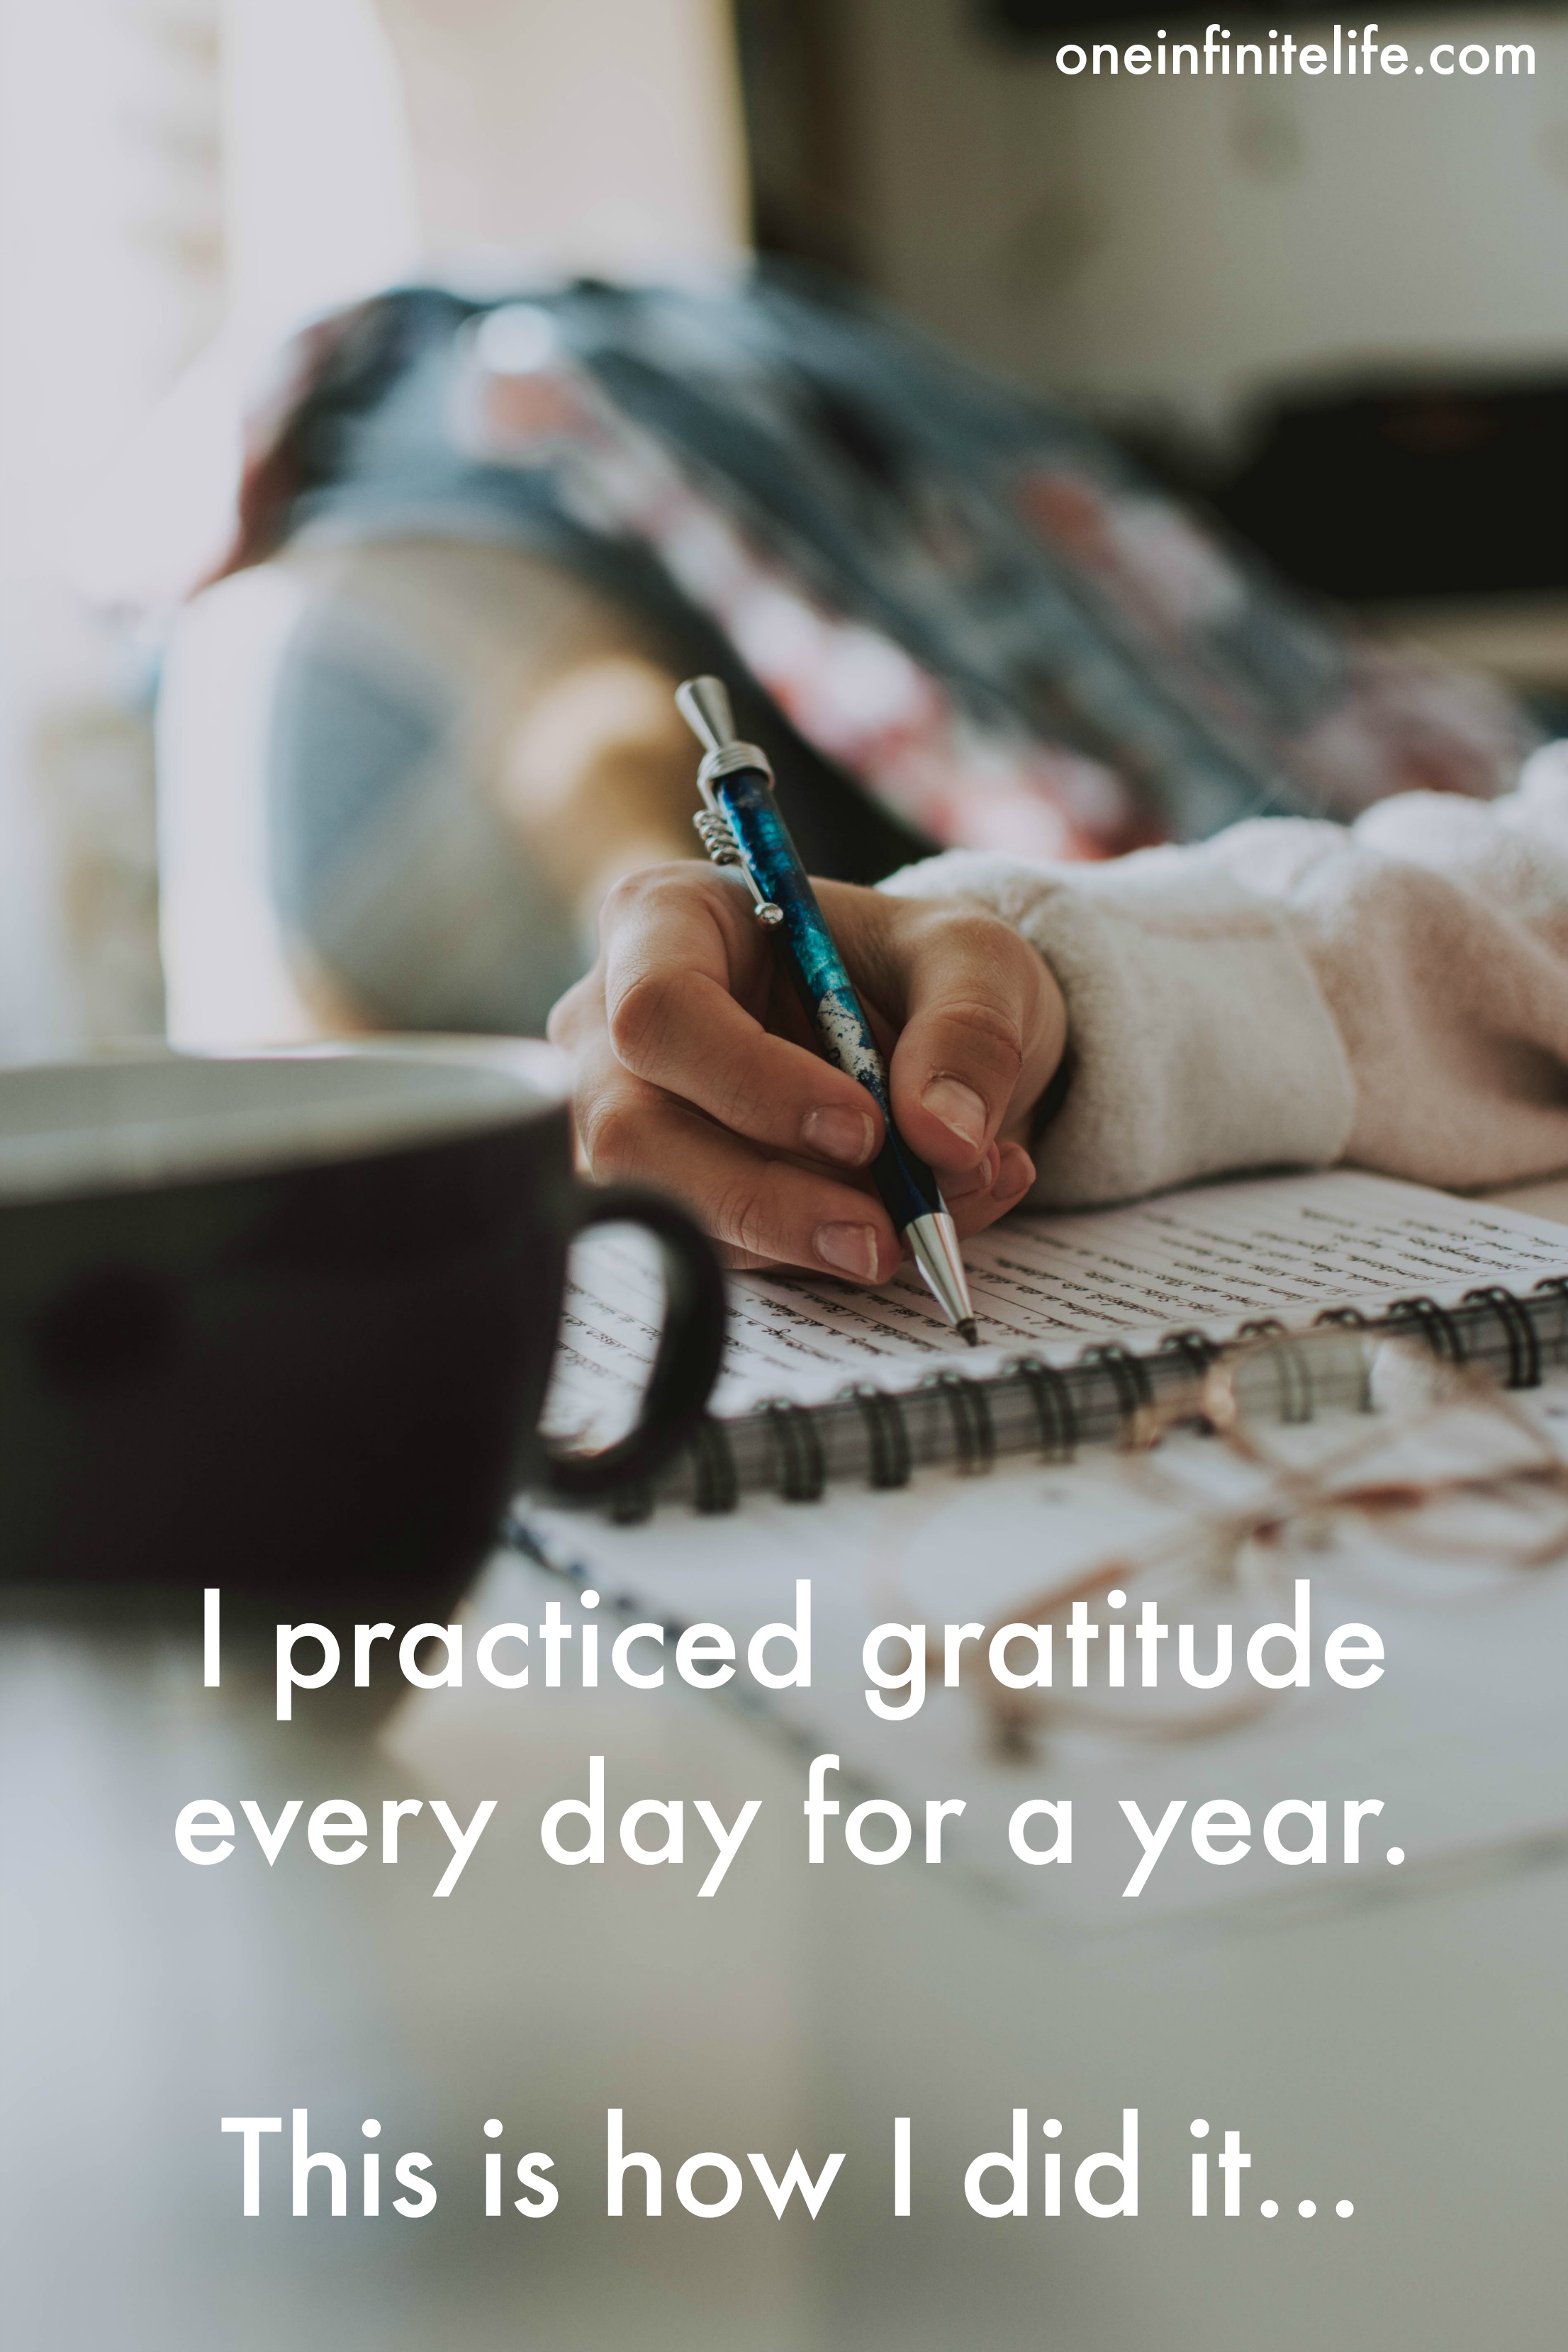 I practiced gratitude every day for a year. This is how I did it...